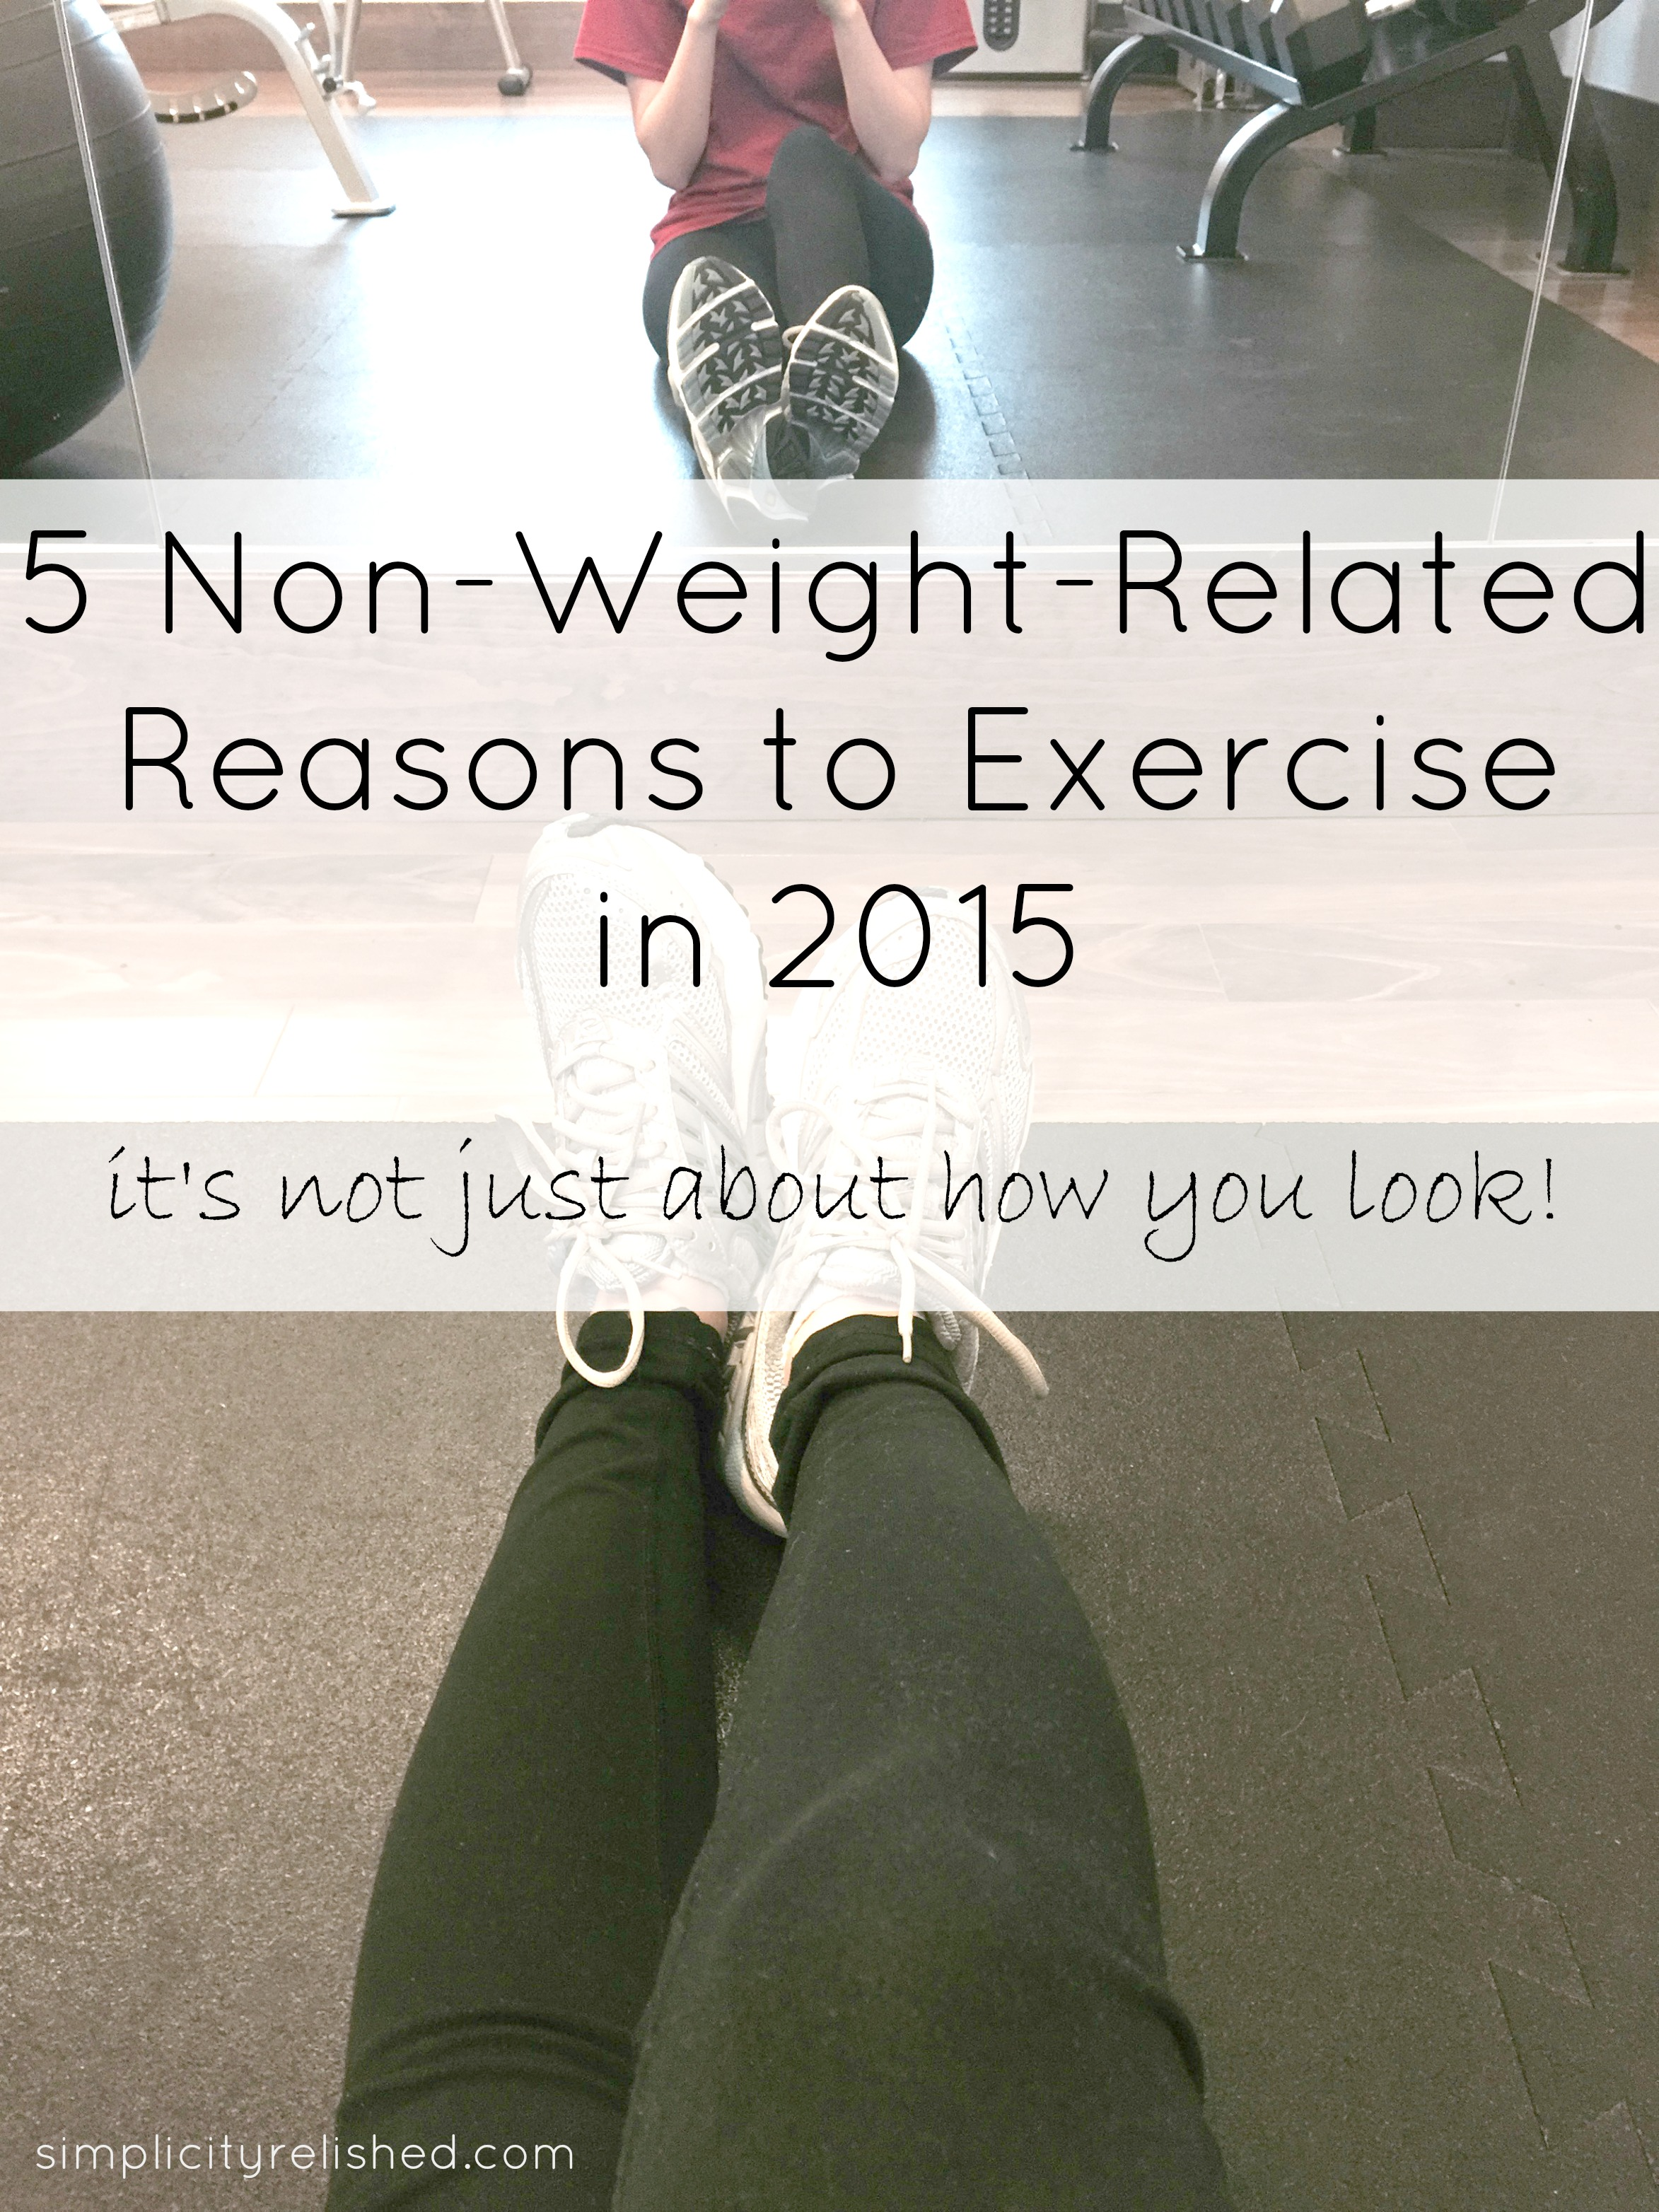 5 Reasons To Exercise Other Than Weightloss